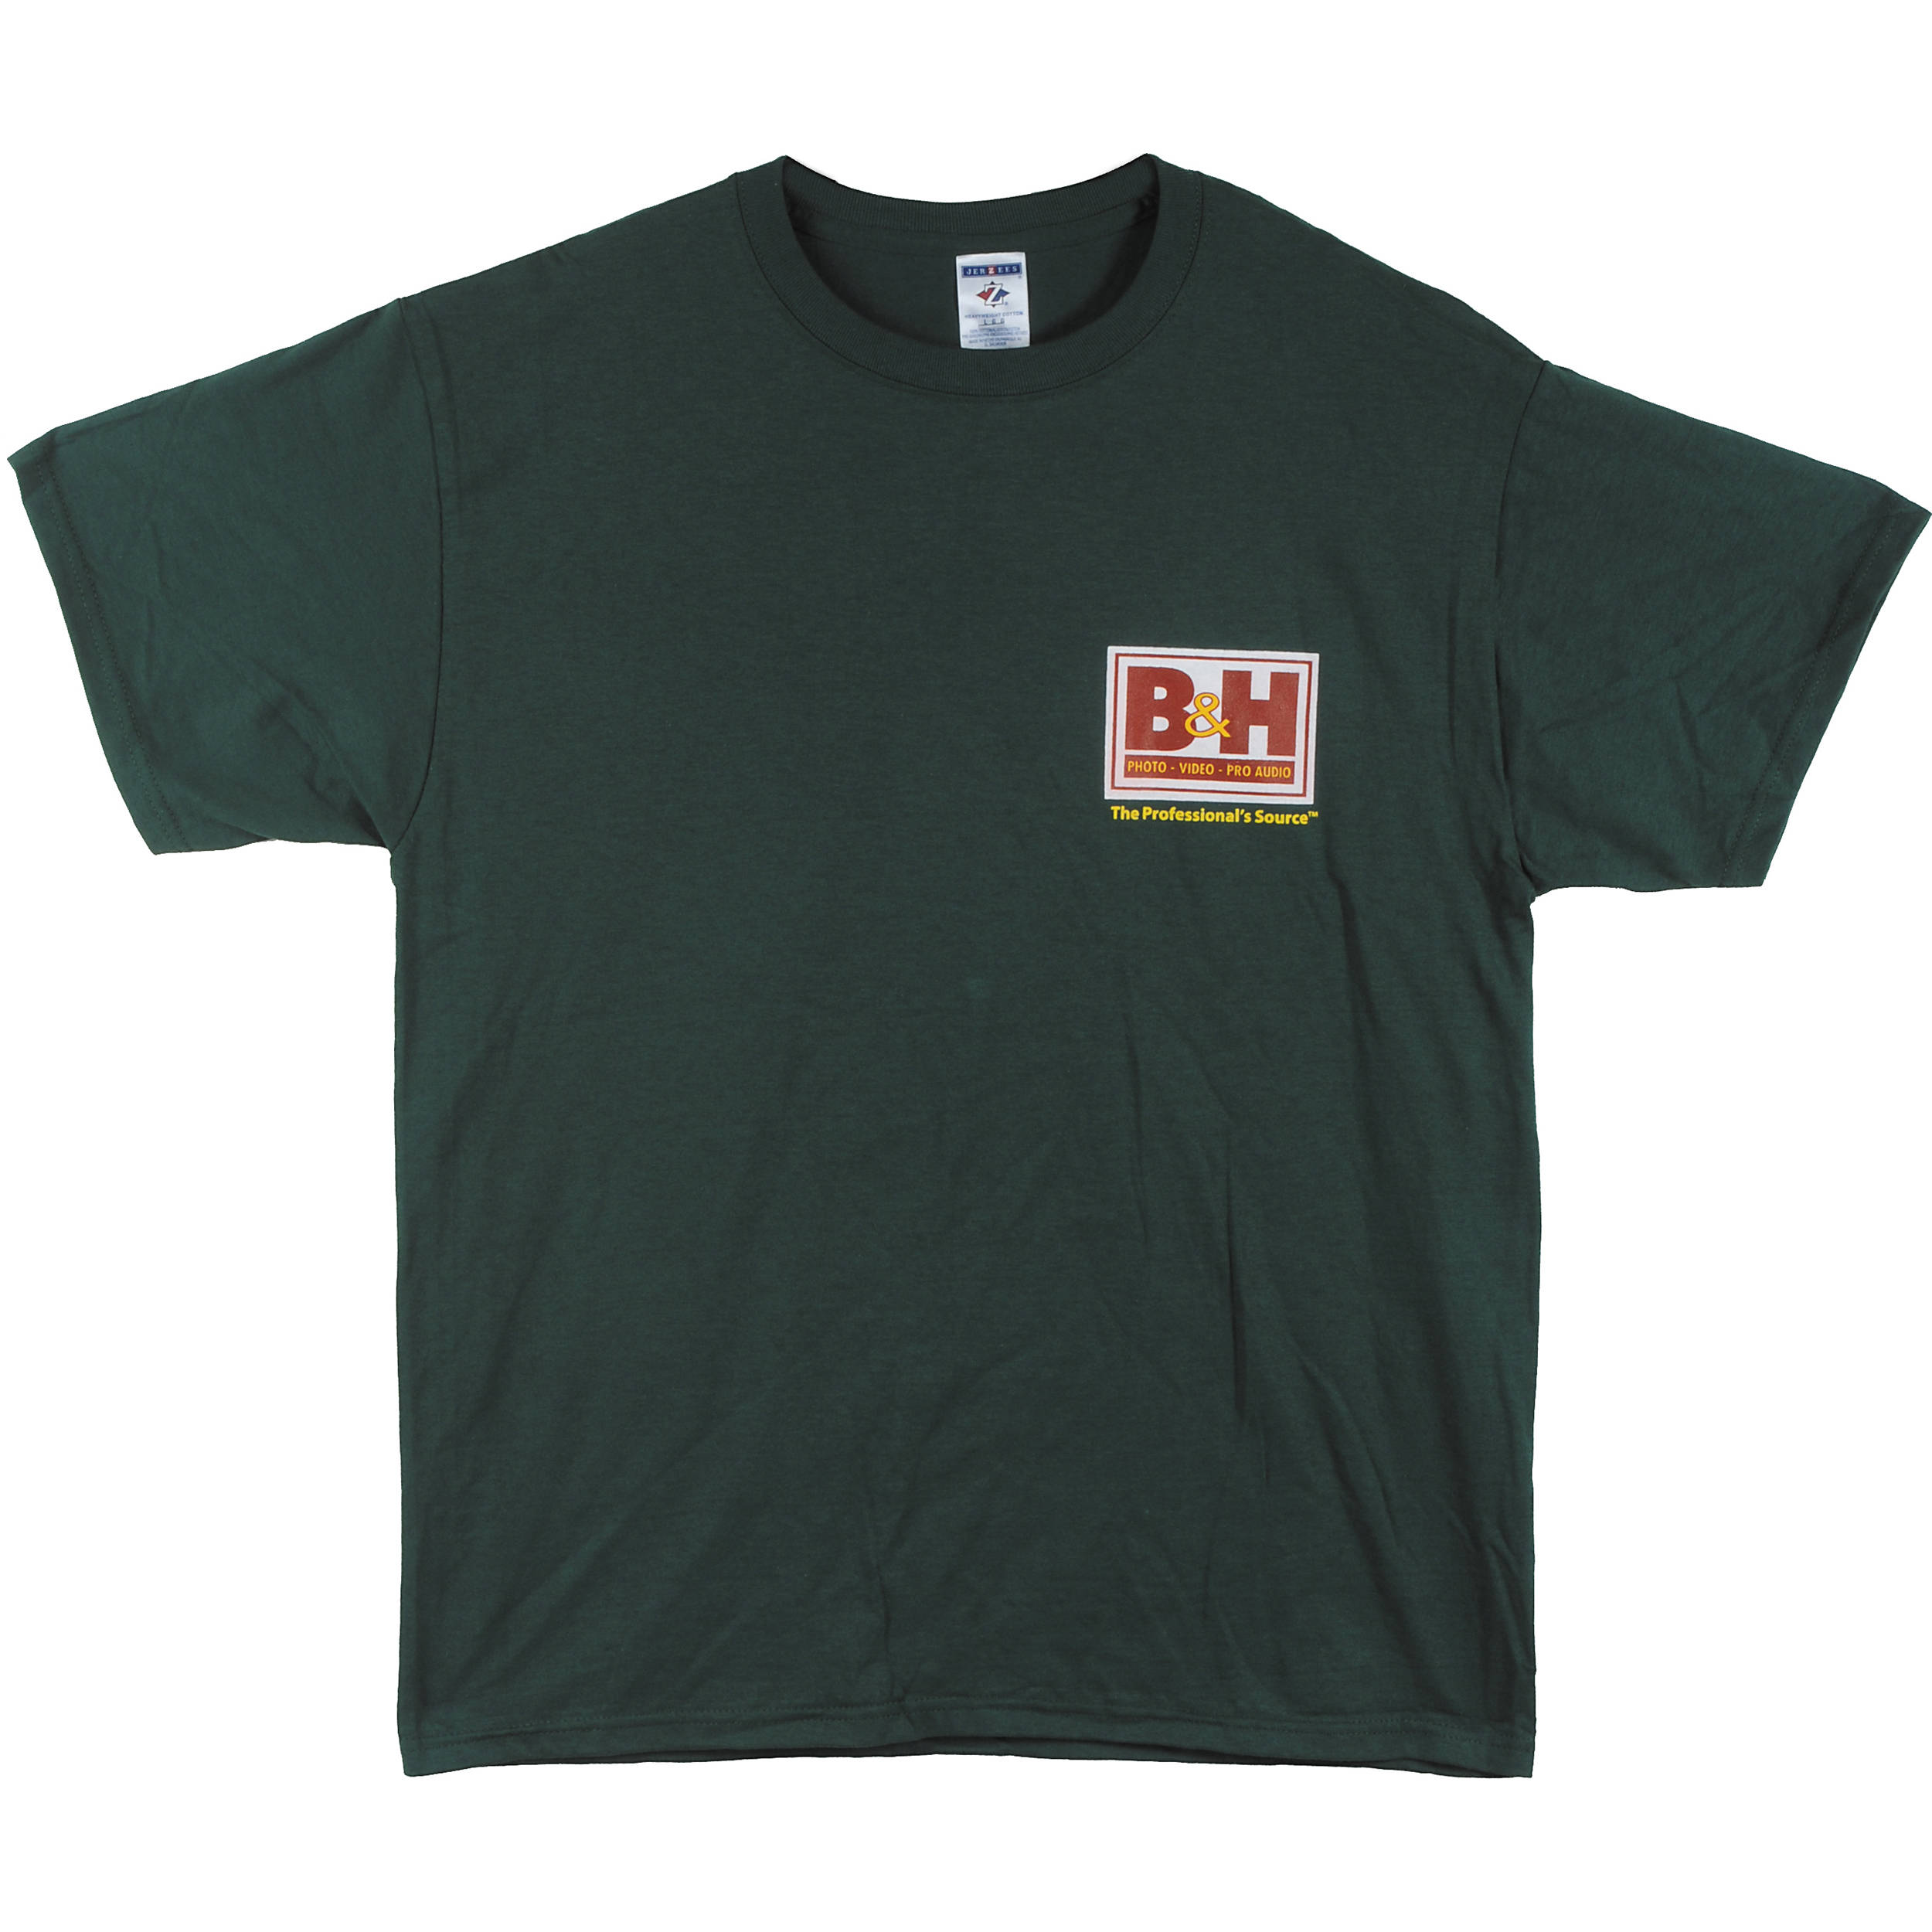 b h photo video web logo t shirt large green bhw tgrl b h. Black Bedroom Furniture Sets. Home Design Ideas